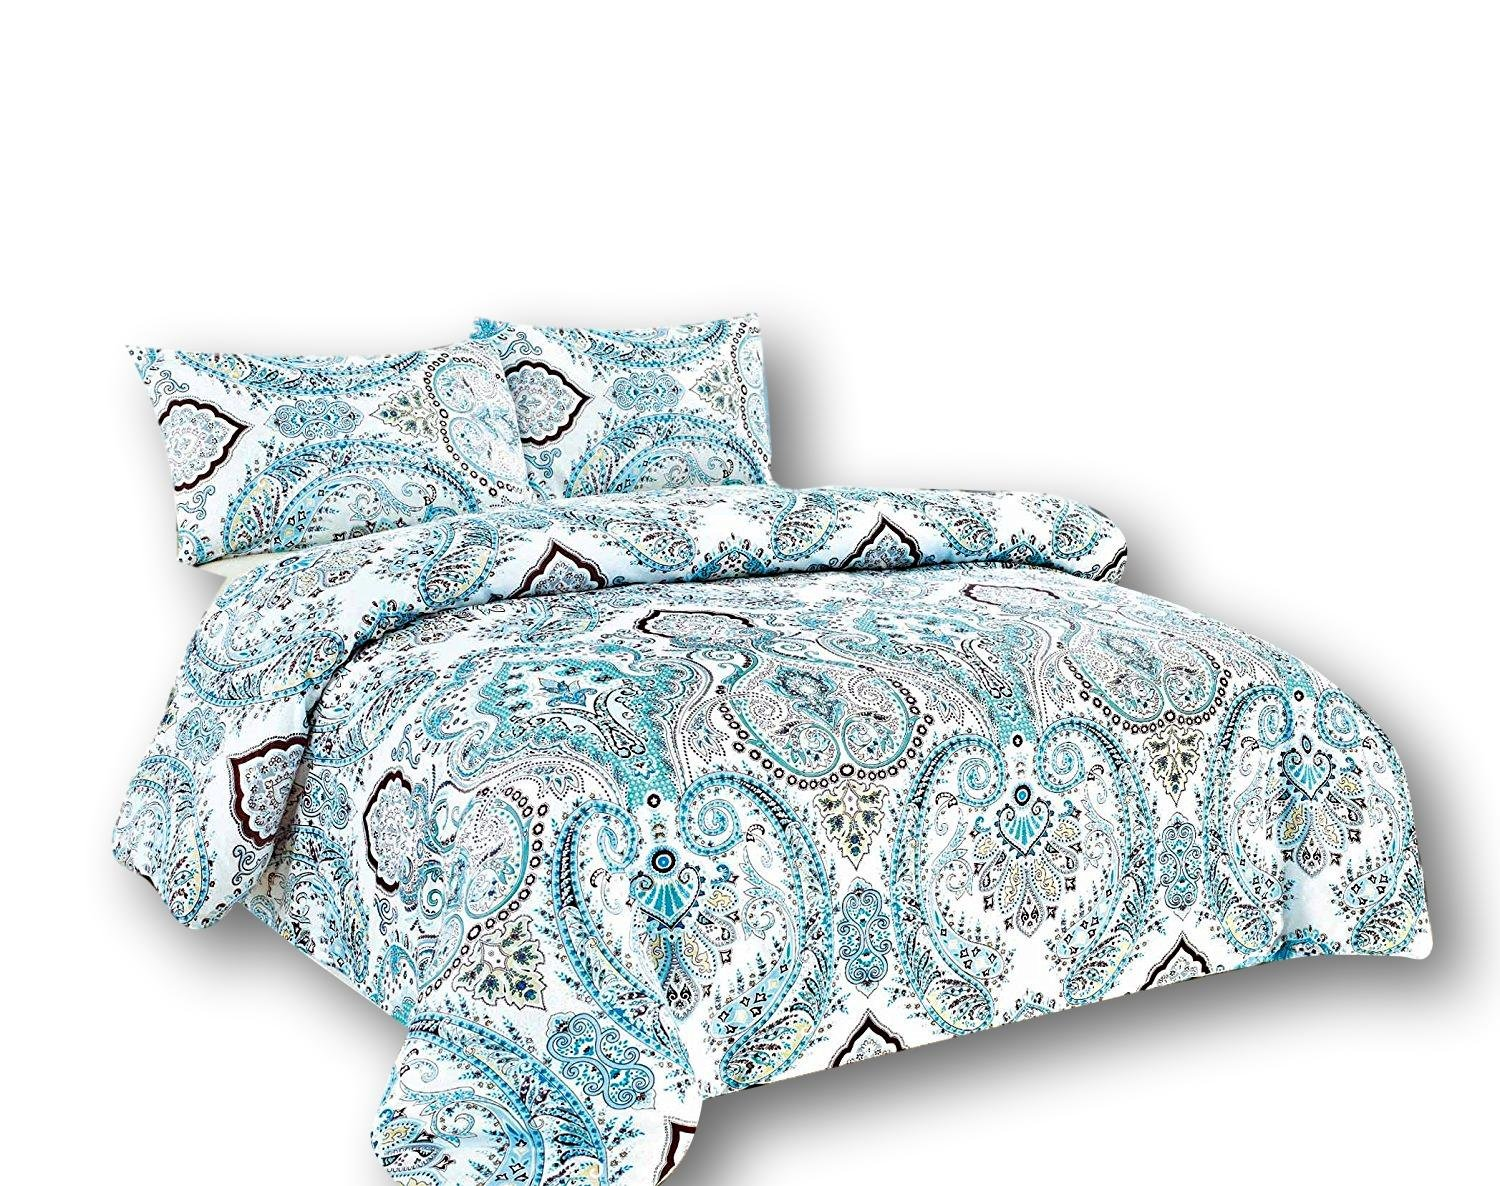 Tache White Blue Paisley Damask Duvet Cover - Frozen Forest - Luxurious Cotton Duvet Cover With Zipper and Security Ties/Ribbons - 3 Piece Set - Queen